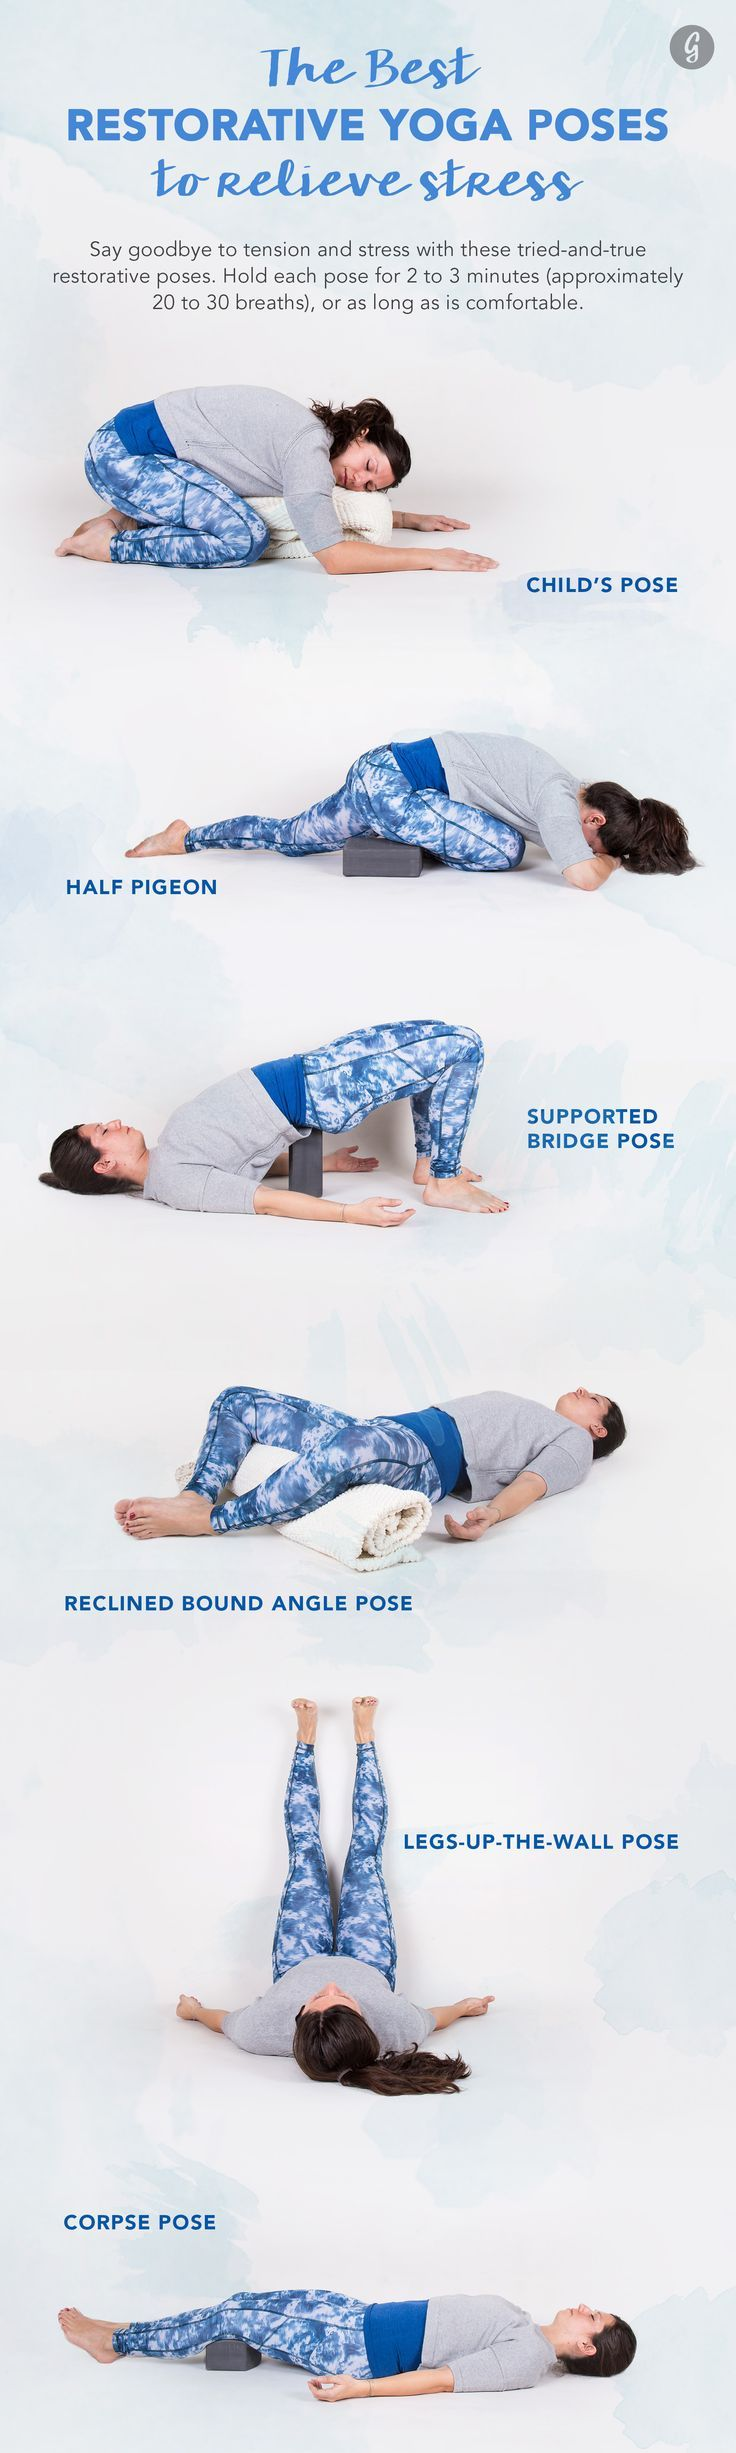 The Best Restorative Yoga Poses #restorative #yoga #workout